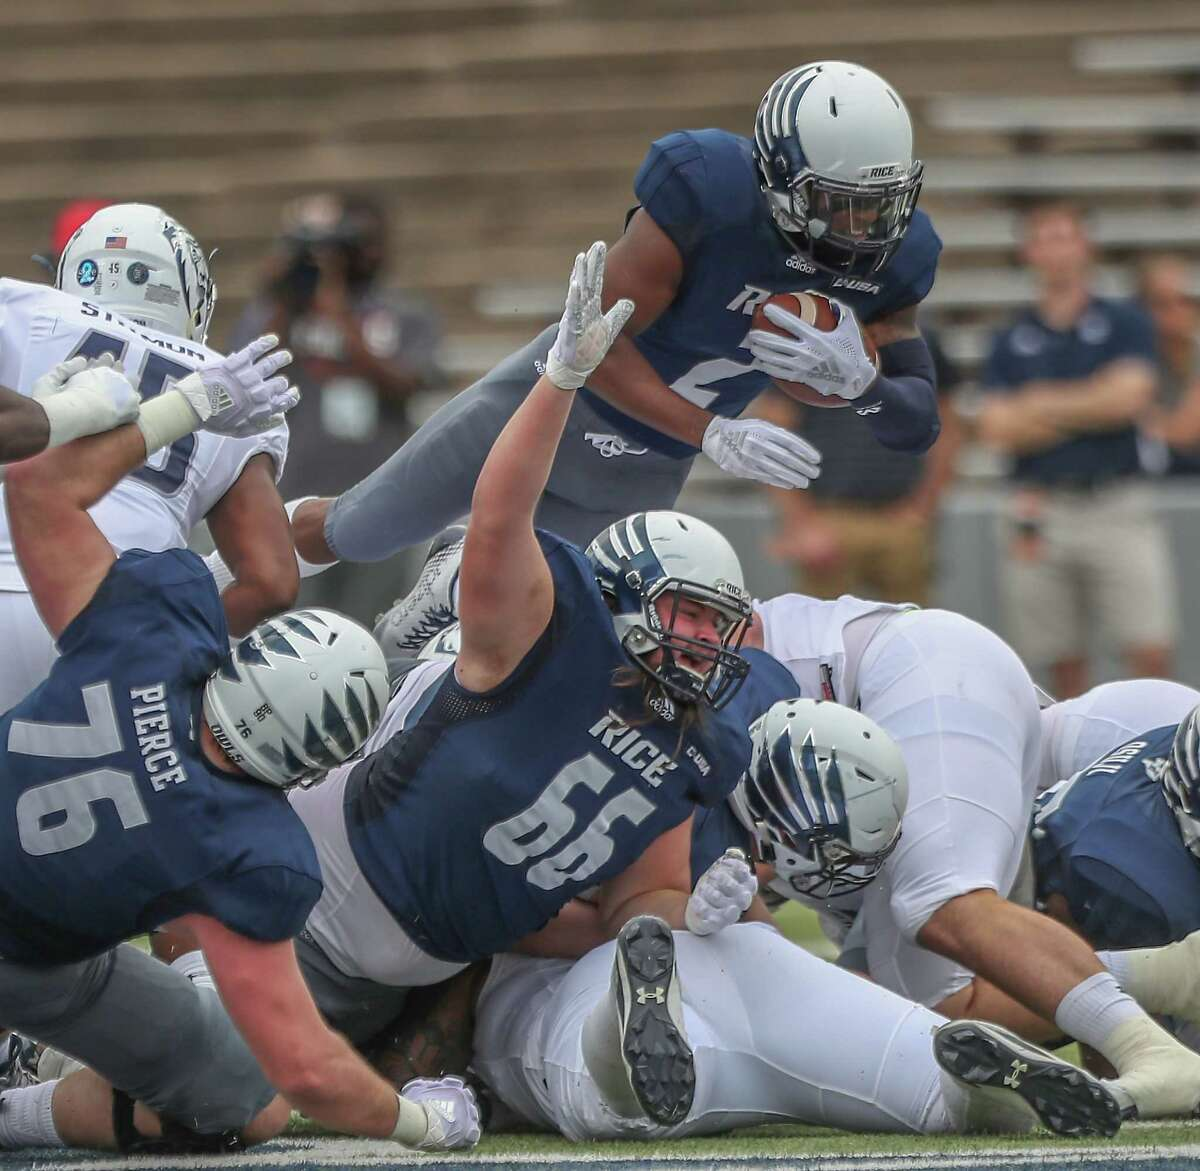 Rice Owls running back Austin Walter (2) leaps for a first down during action at Rice Stadium Saturday, Nov. 24, 2018, in Houston.